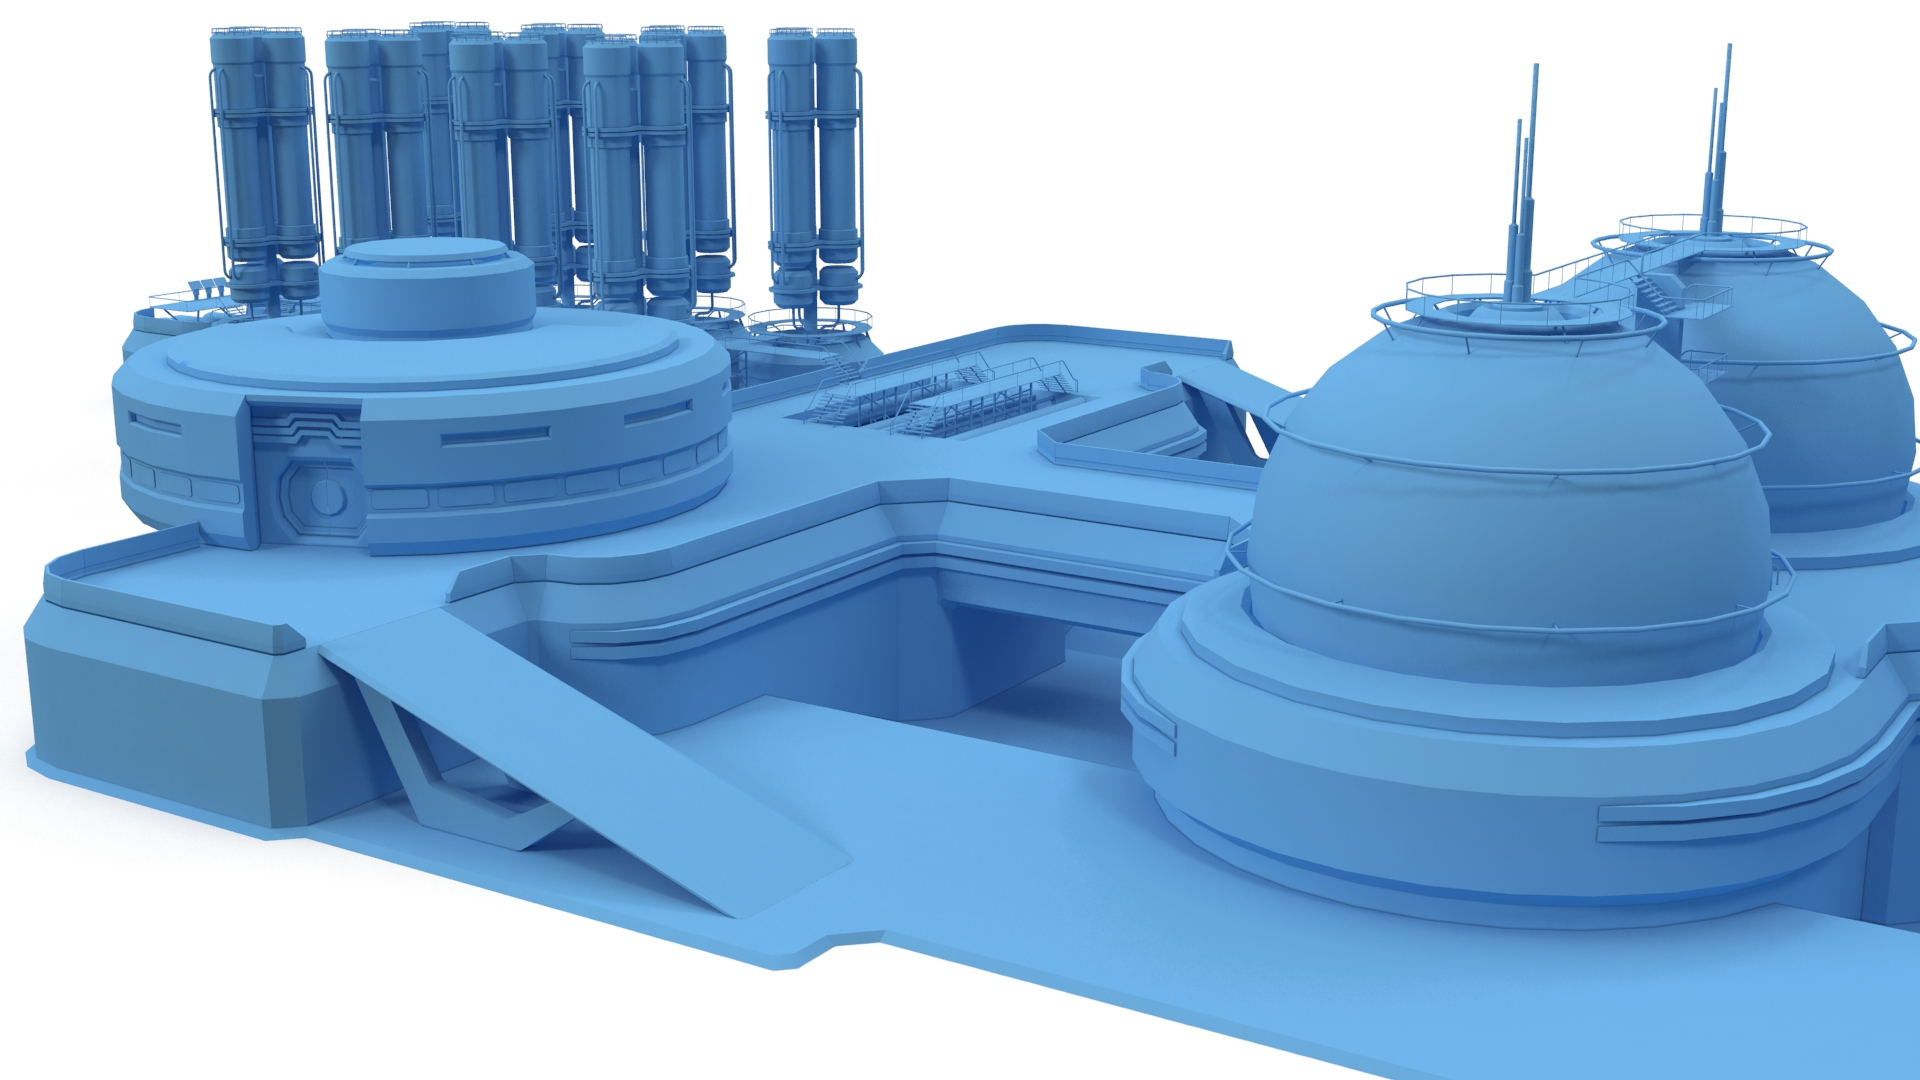 sci-fi gas storage base 3d model 3ds max fbx obj 265813